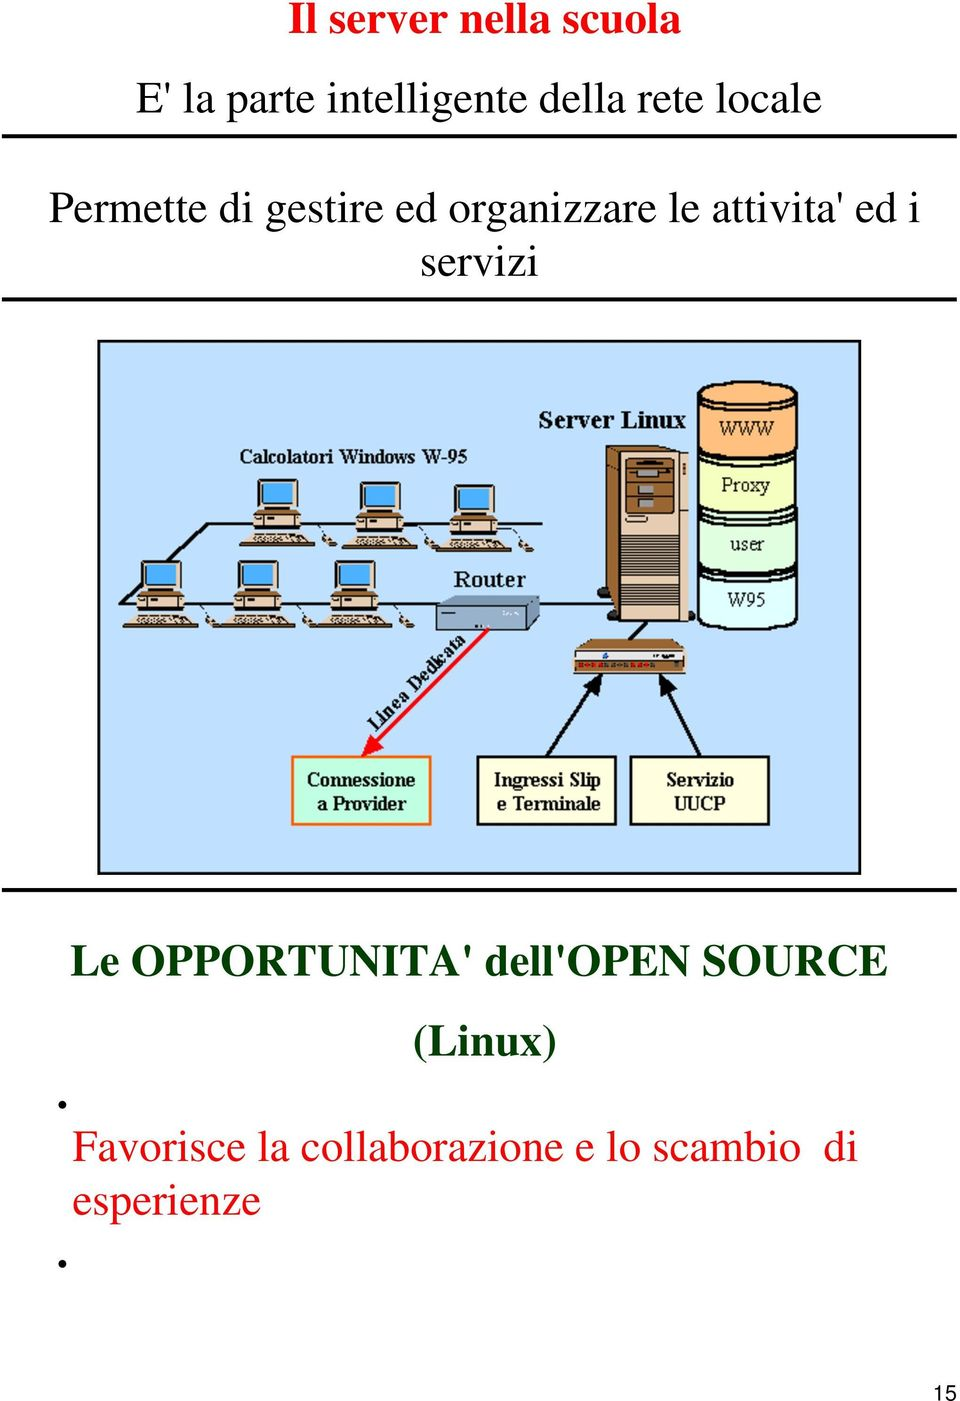 attivita' ed i servizi Le OPPORTUNITA' dell'open SOURCE